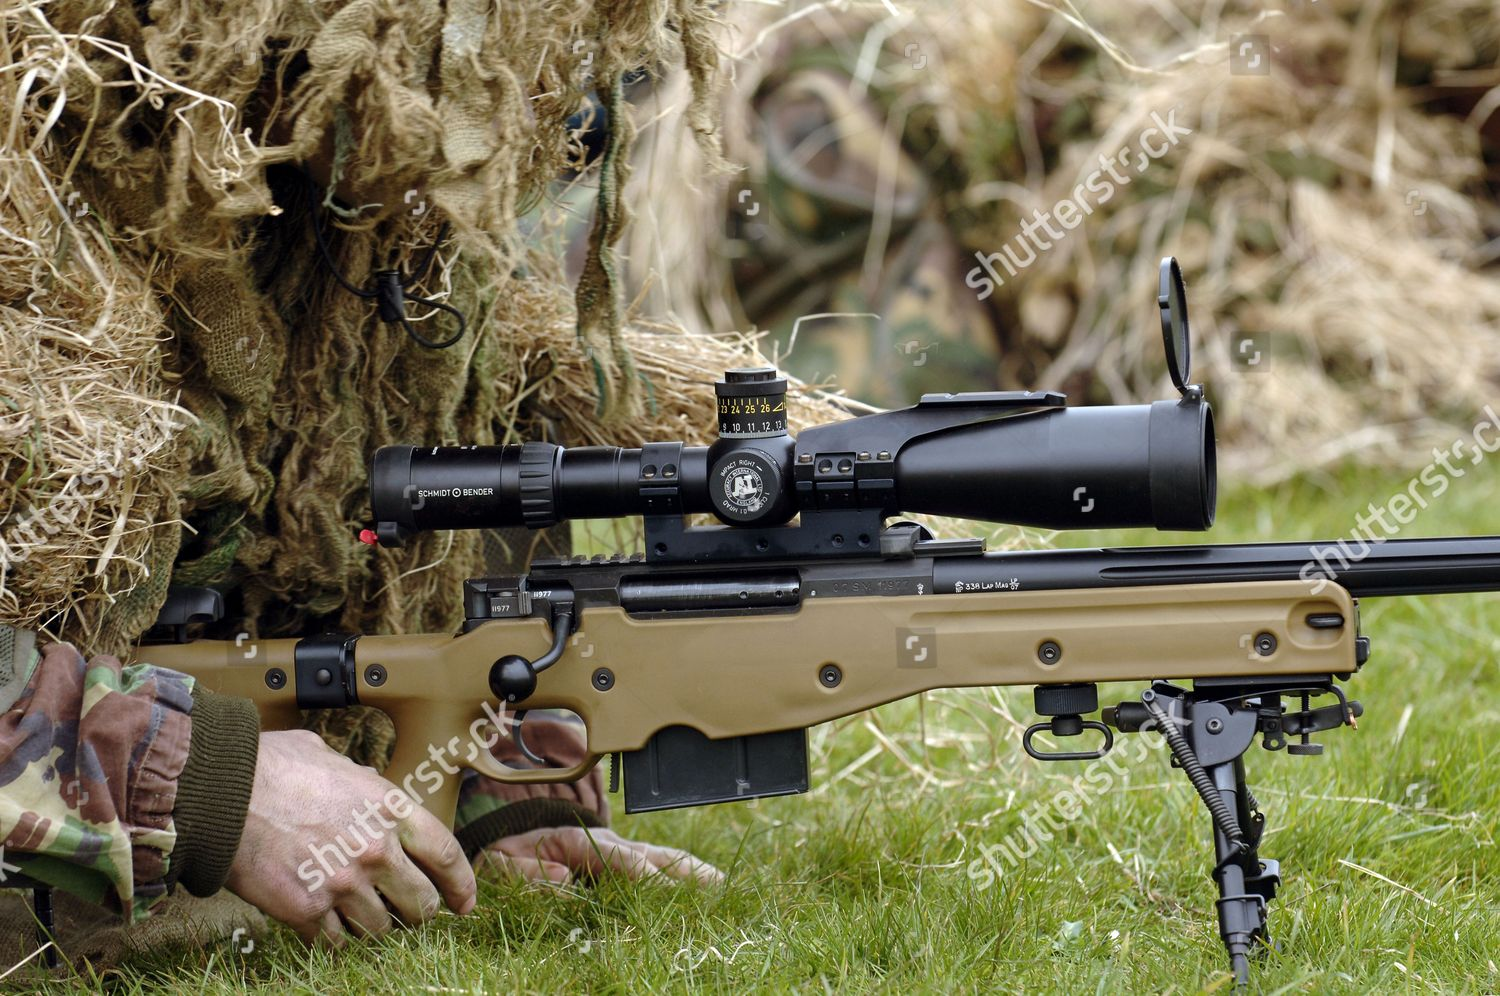 Longrange L115a3 Sniper Rifle Used By British Editorial Stock Photo Stock Image Shutterstock